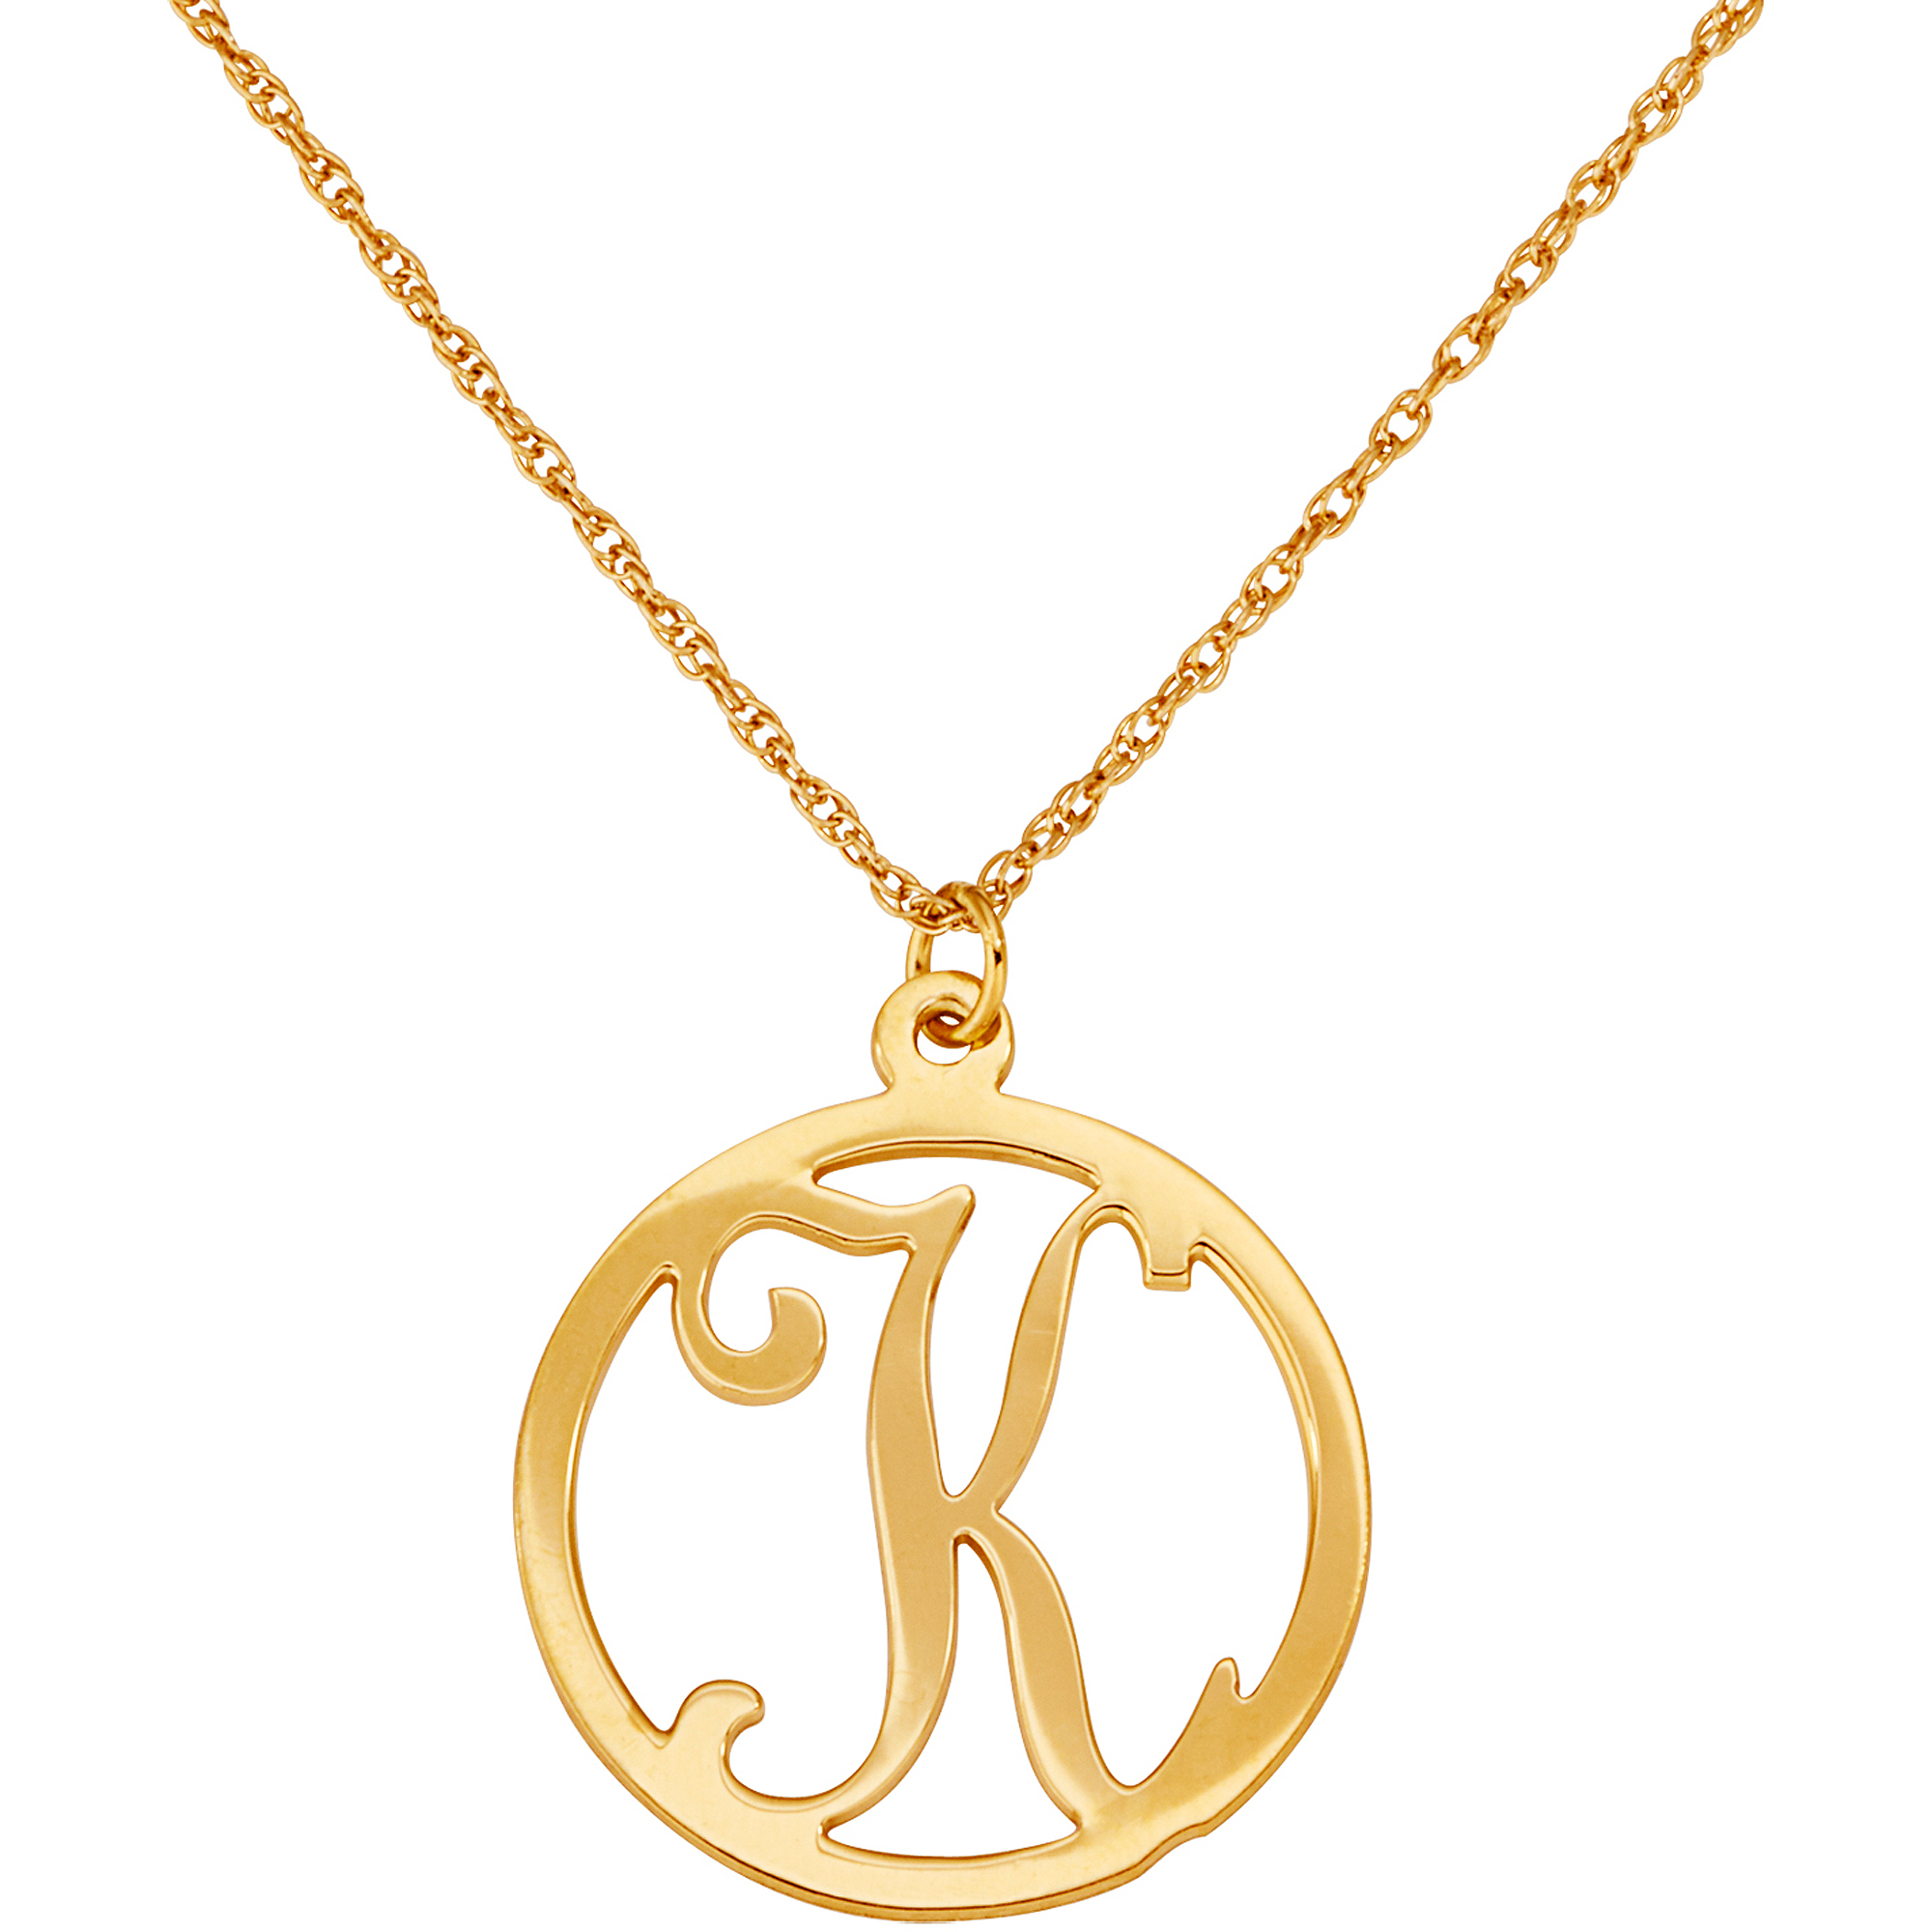 Personalized Women's Gold over Sterling Silver Single Initial Circle Necklace